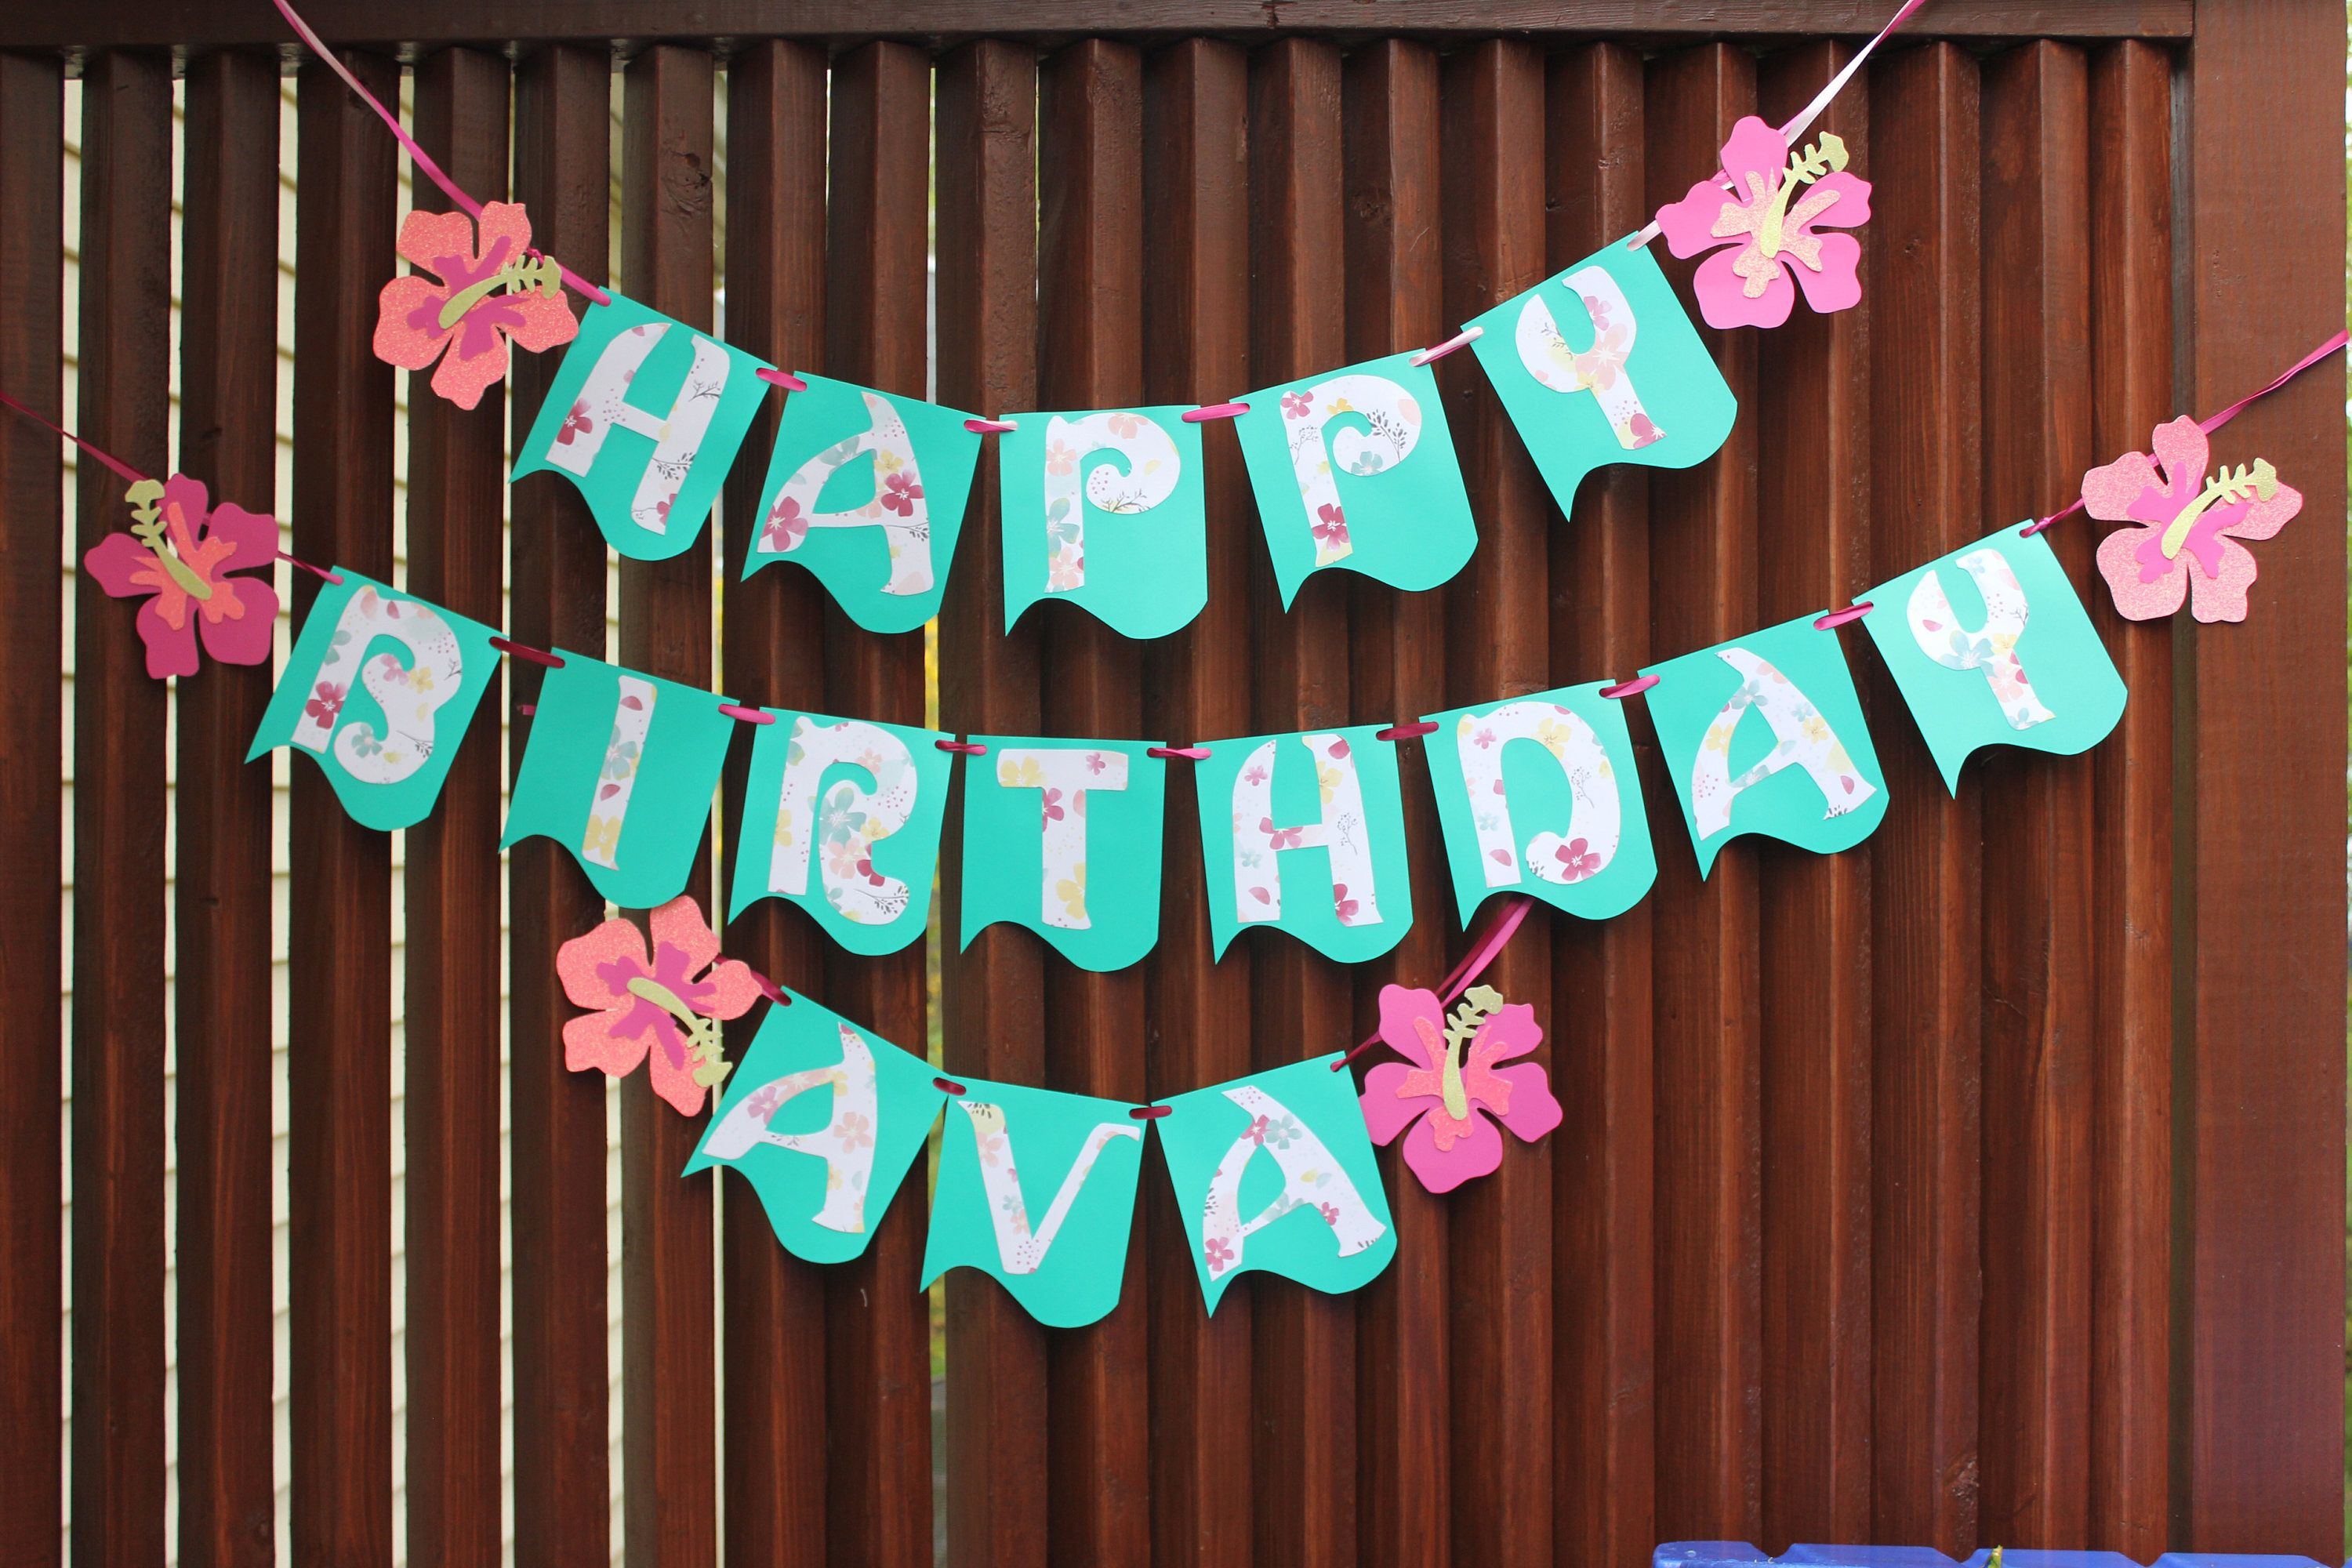 moana birthday banner Racecars or ribbons gender reveal banner | Moana birthday Aloha  moana birthday banner